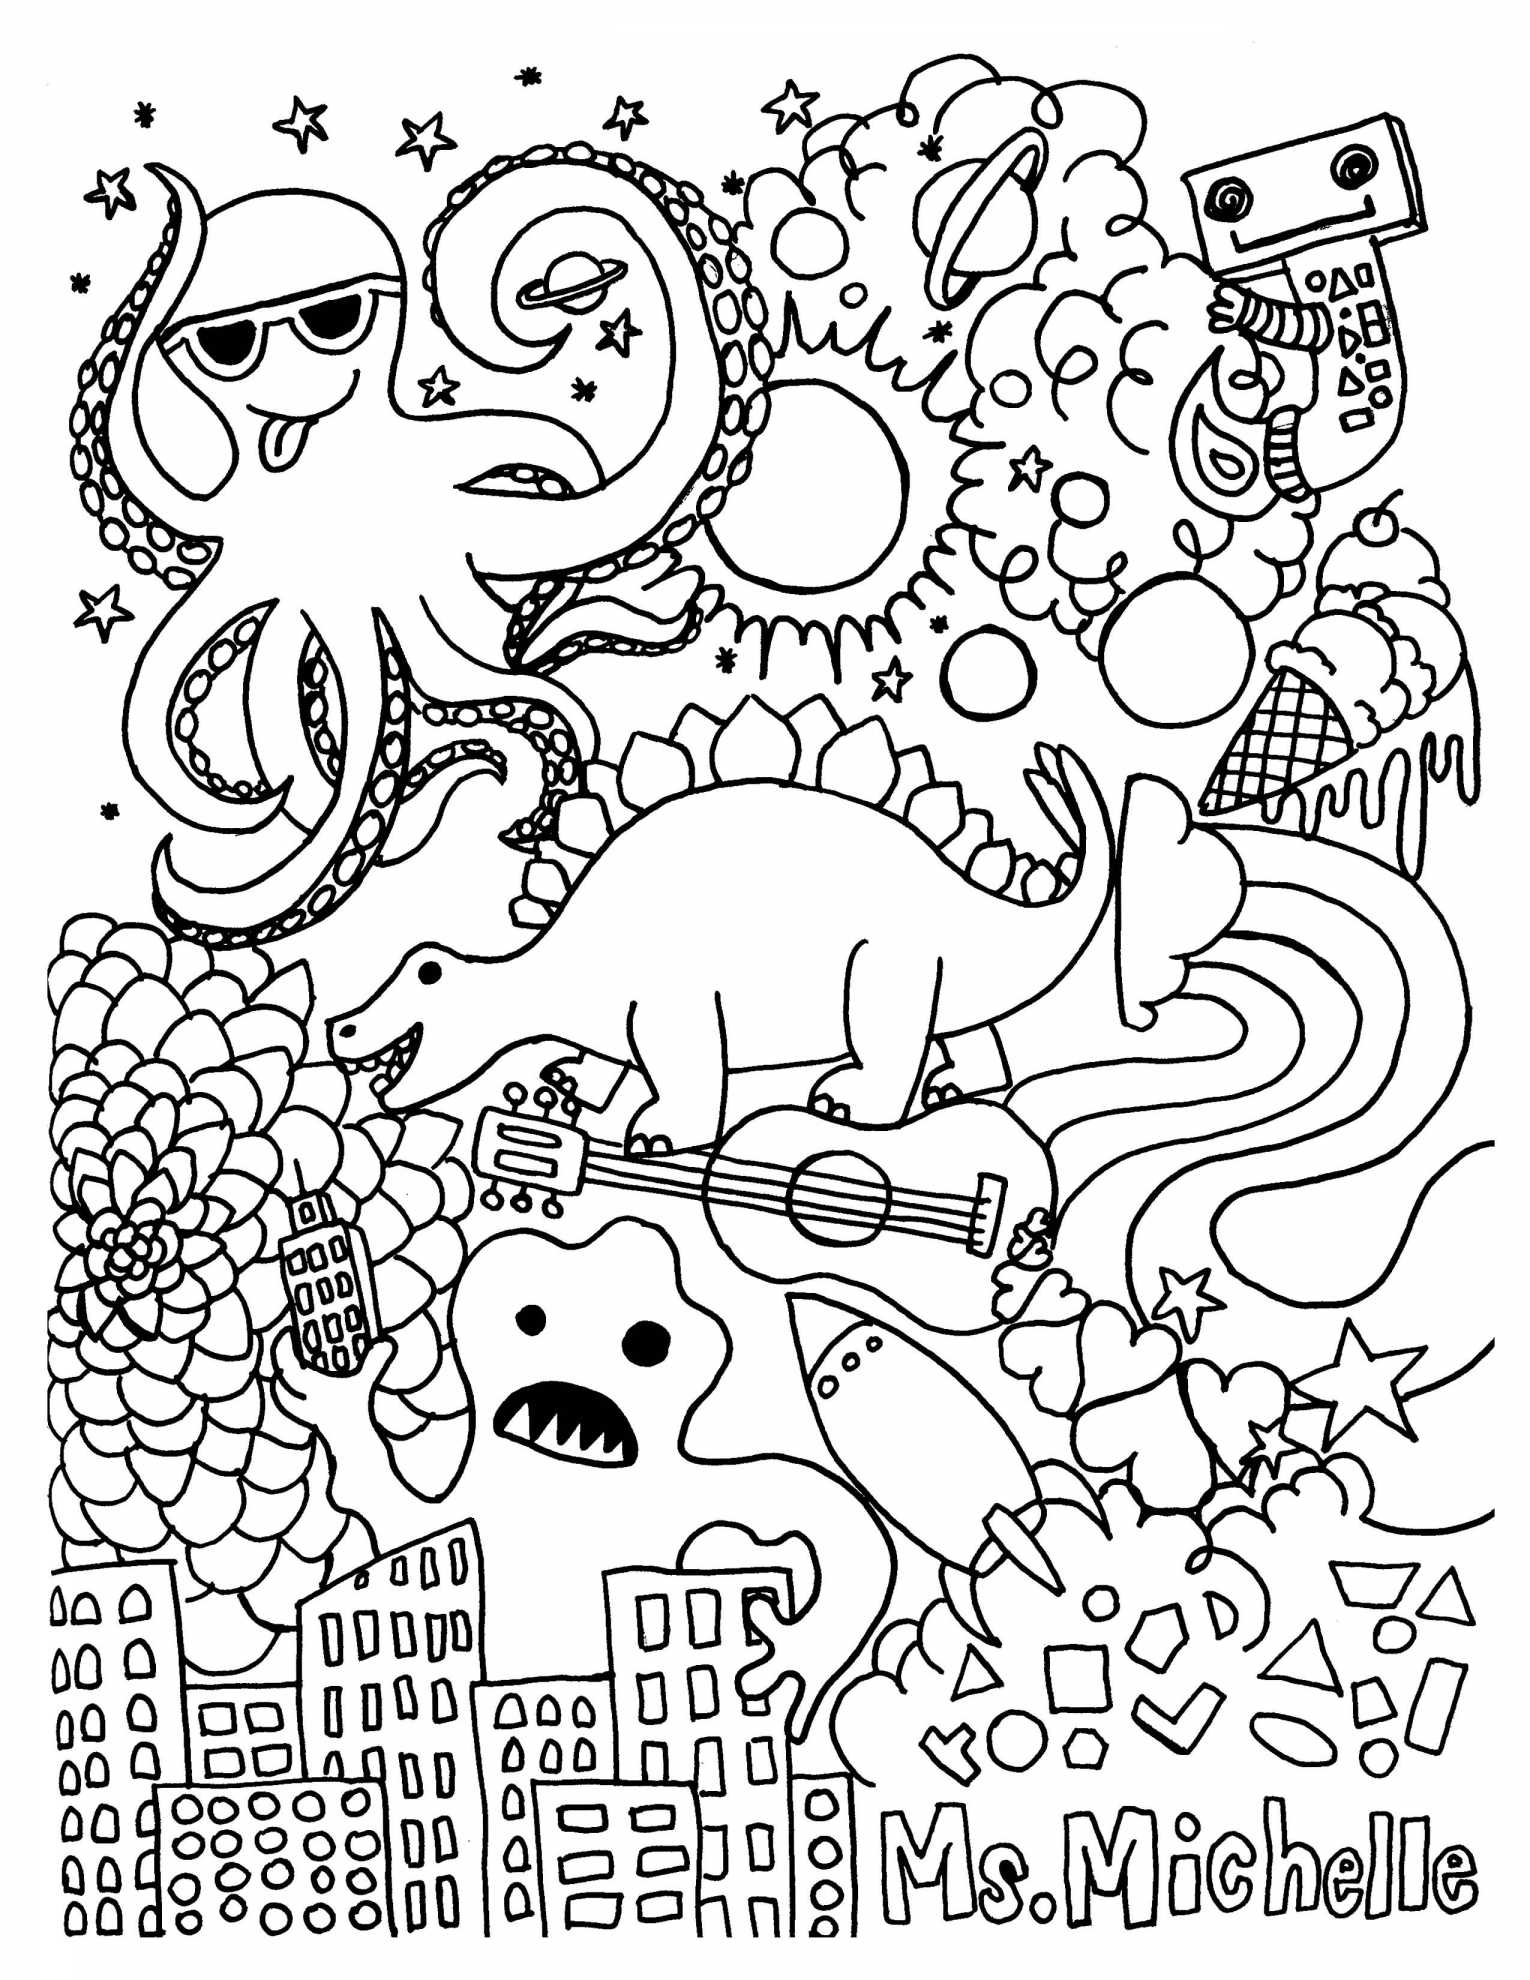 school coloring pages printable Collection-Coloring Pages for College Students Kids Coloring Line Lovely Hair Coloring Pages New Line Coloring 0d 13-t